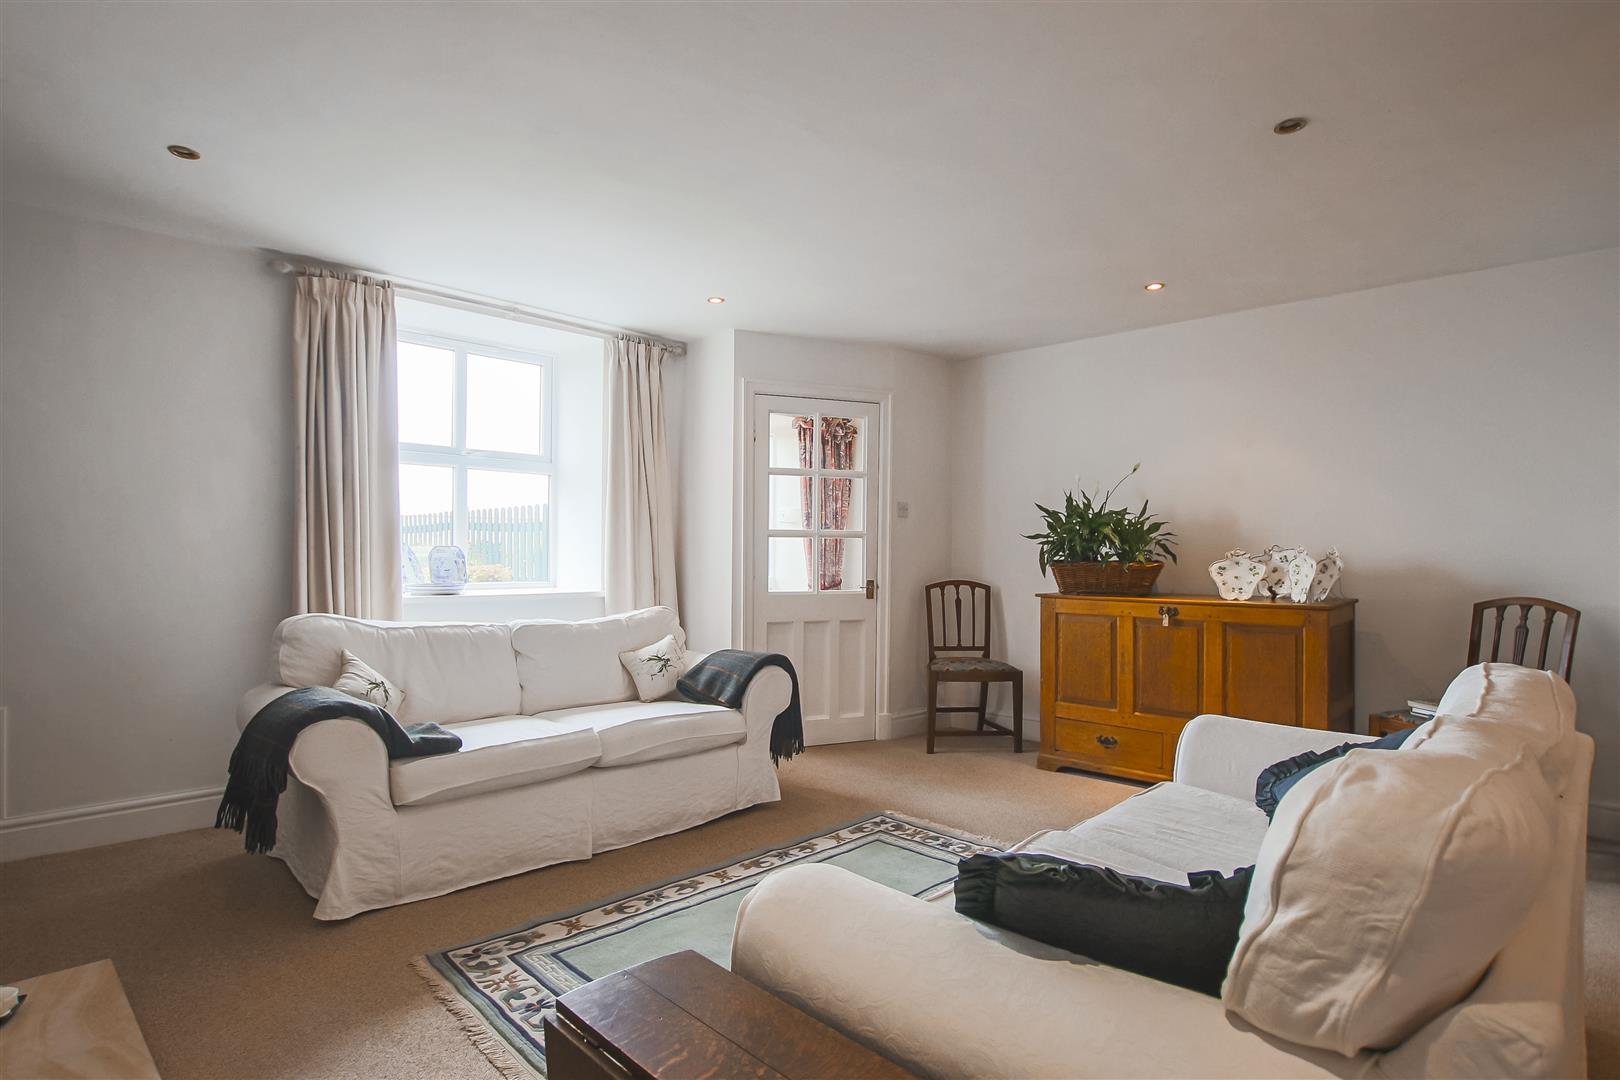 4 Bedroom Townhouse House For Sale - Image 8